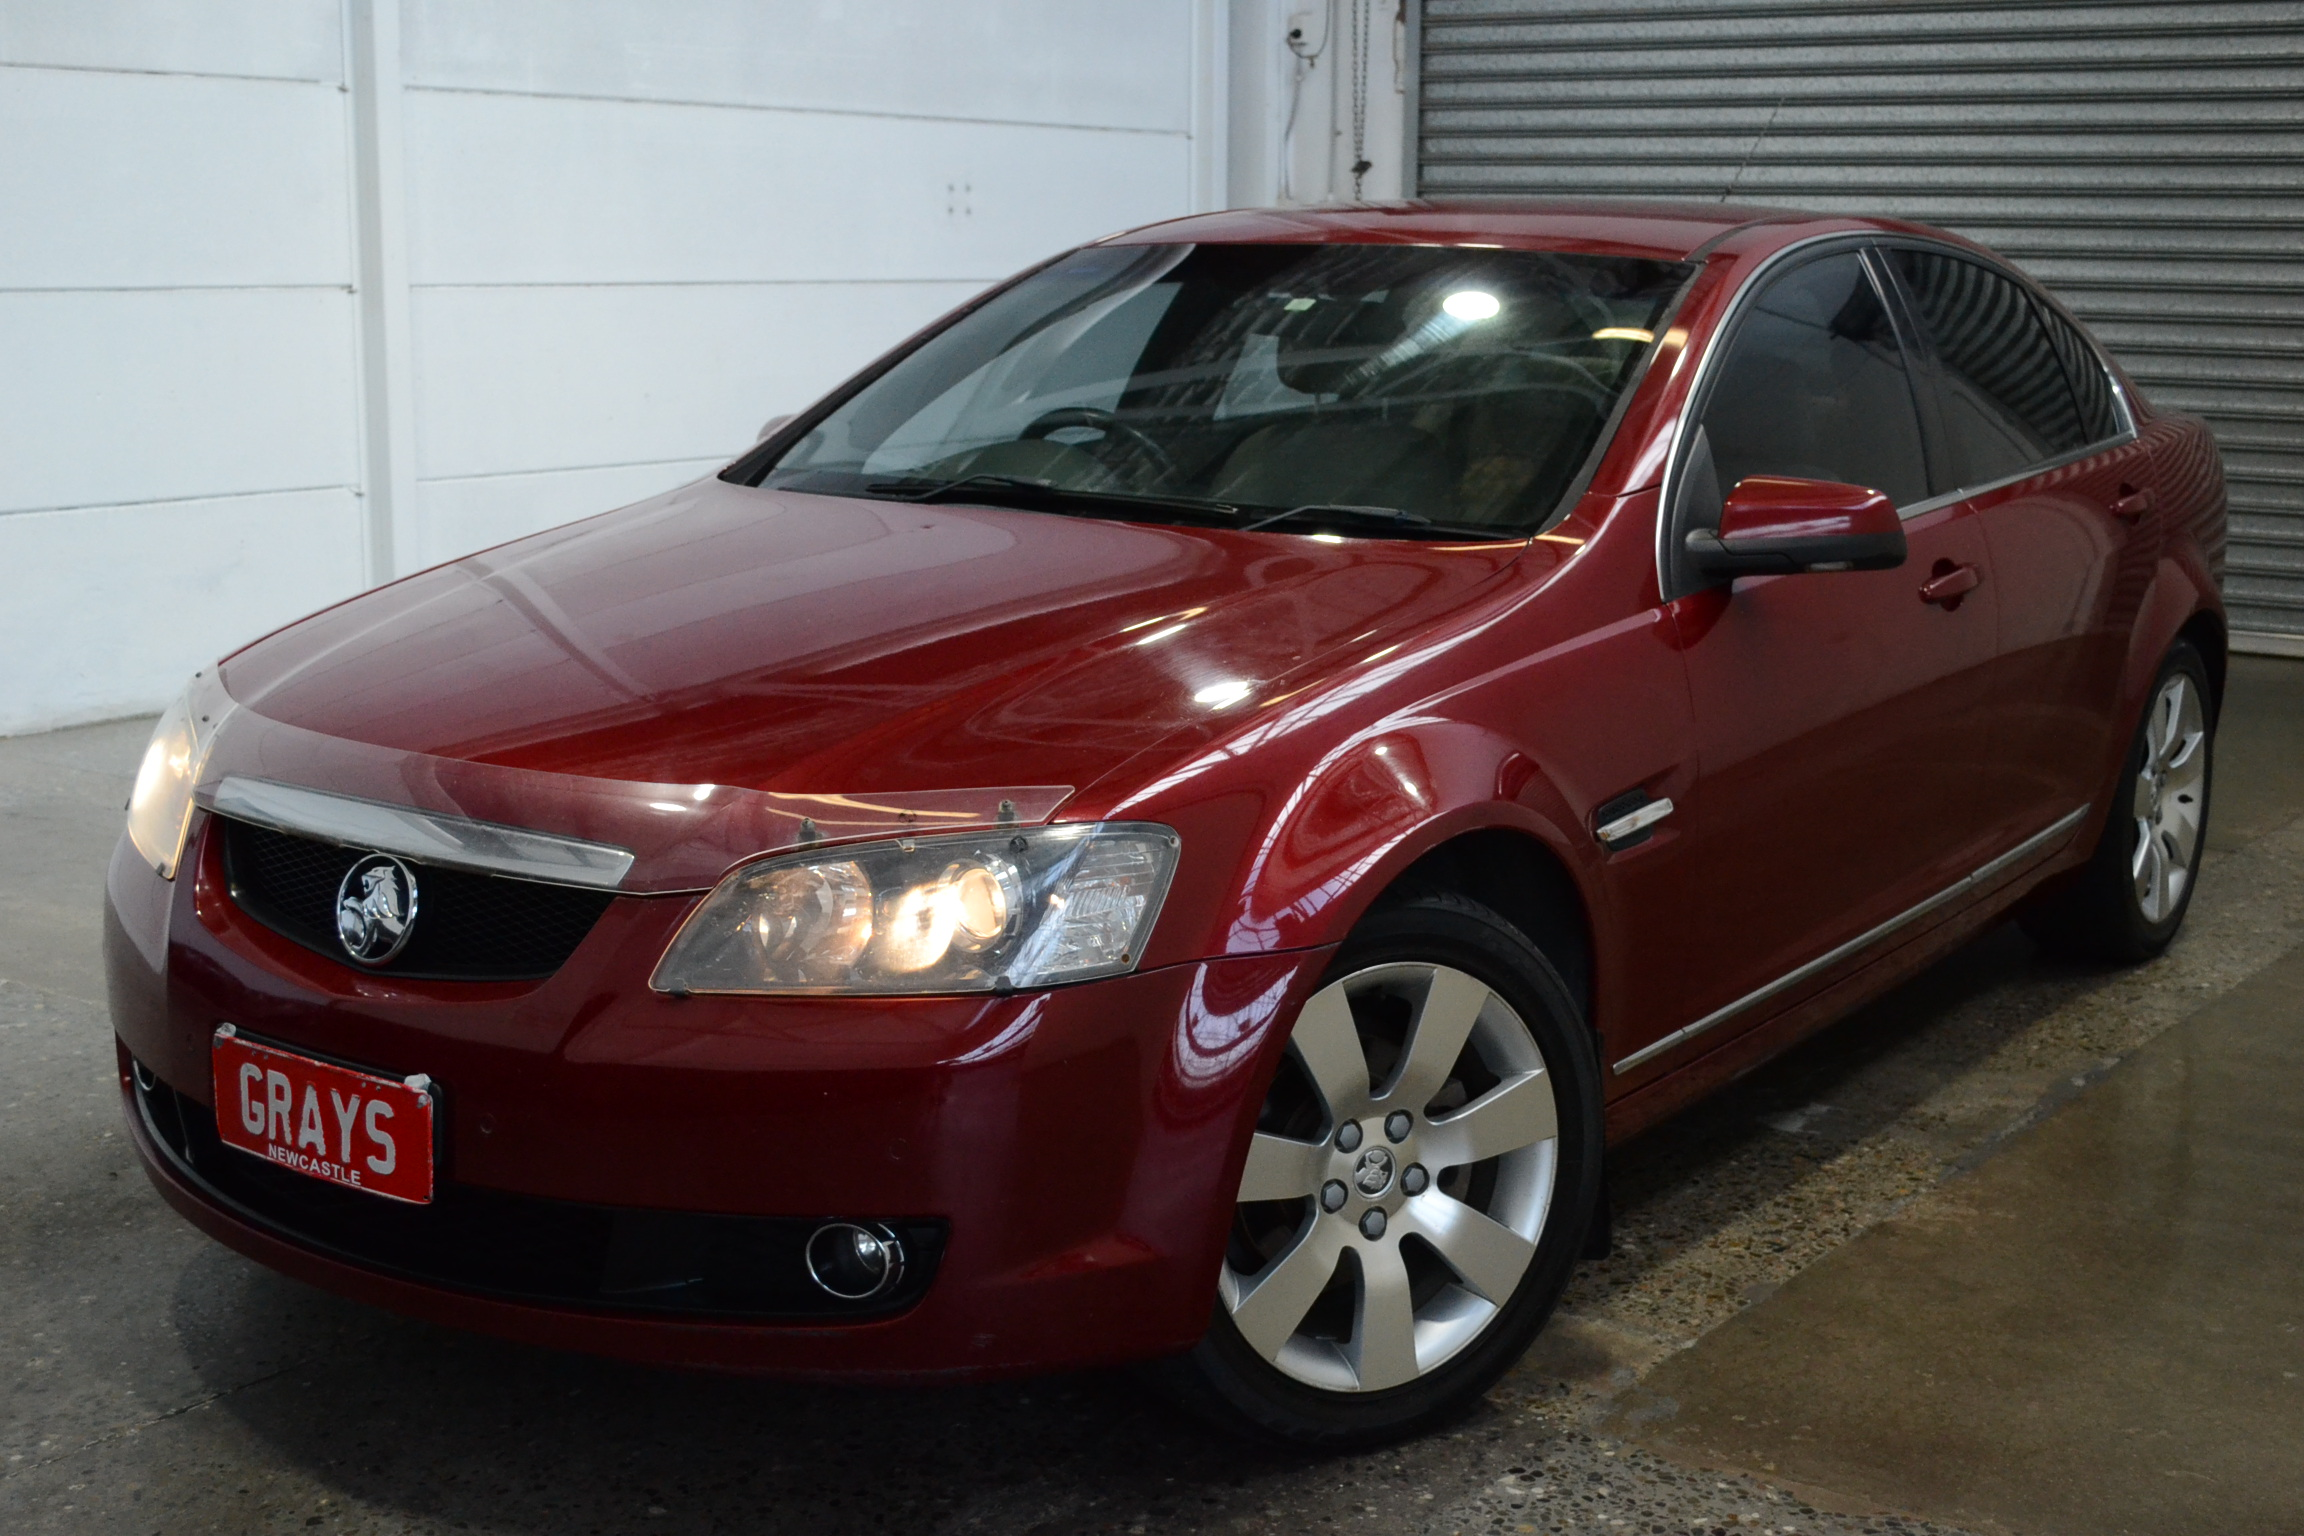 2006 Holden Calais V VE Automatic Sedan